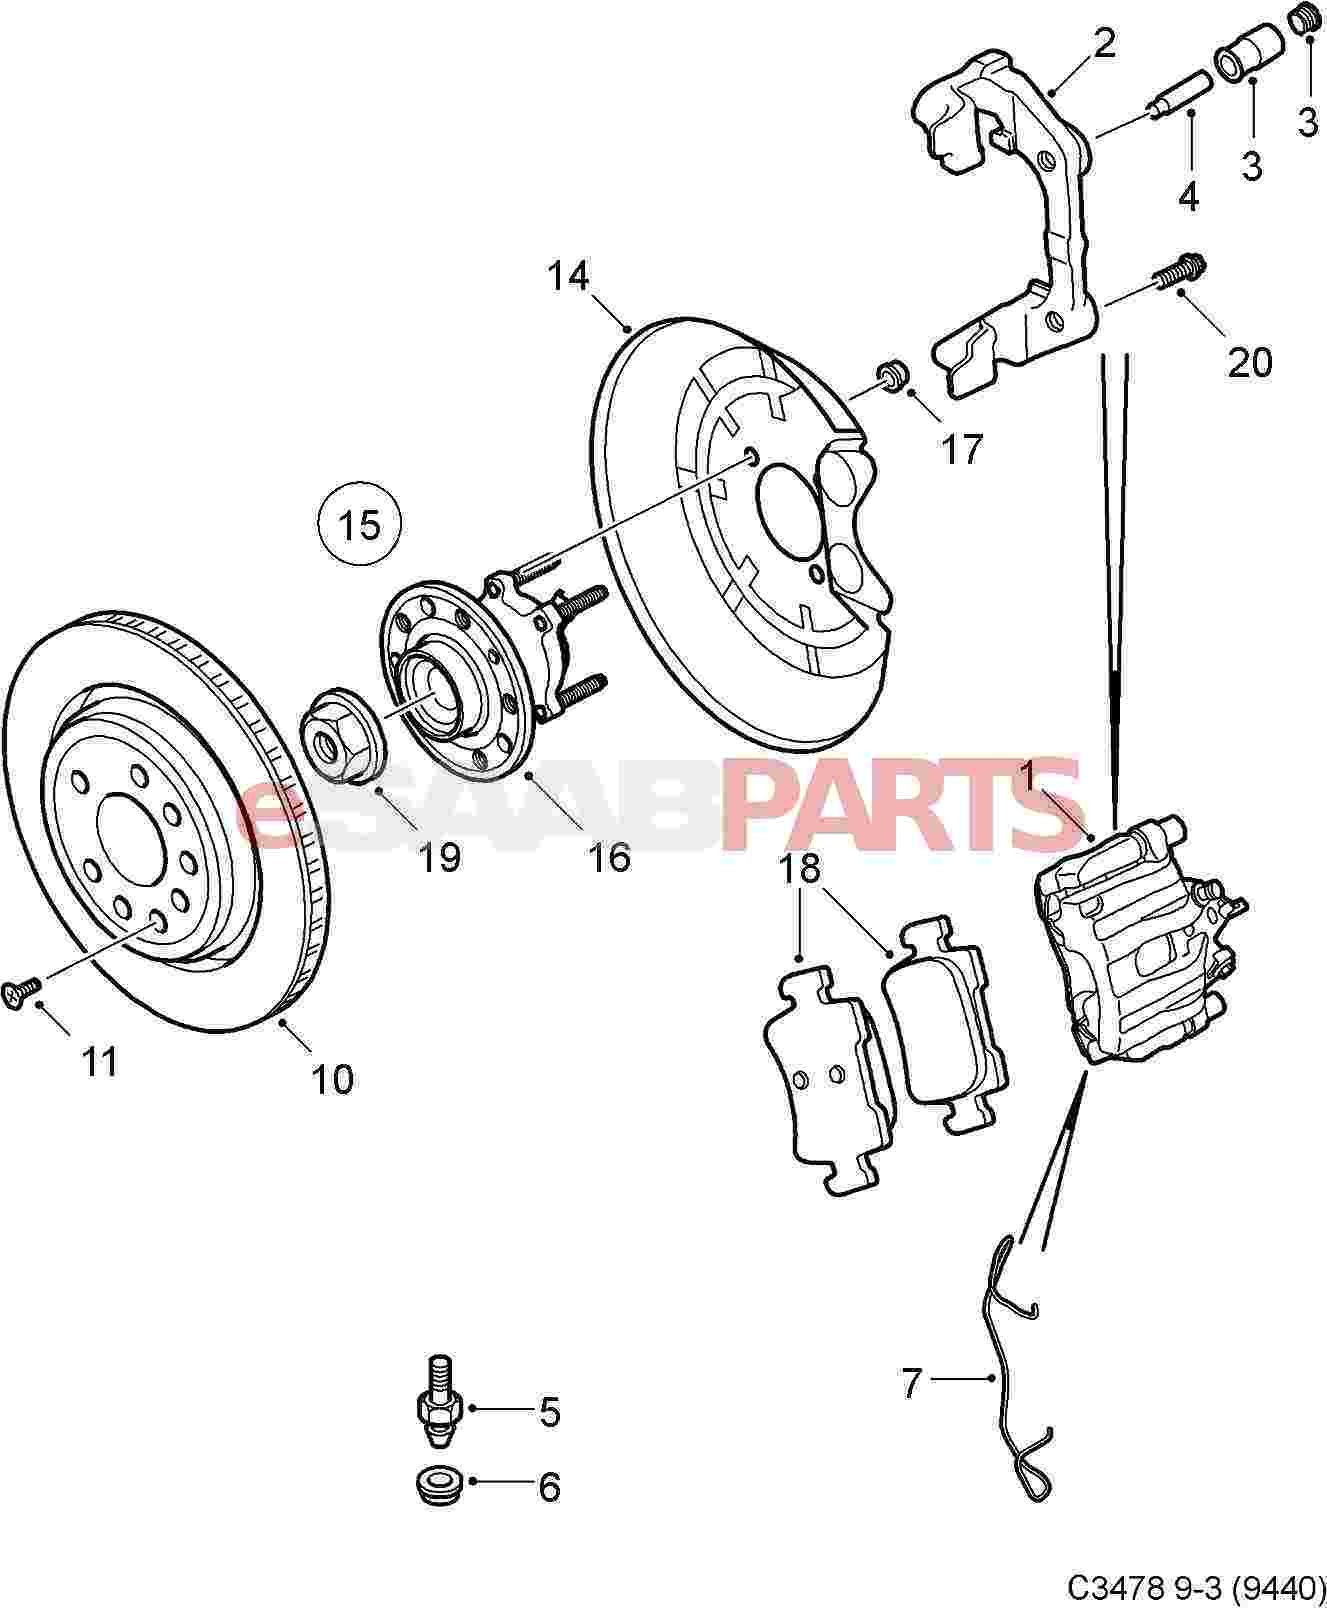 93172185] saab brake caliper right rear 292mm brakes genuineSaab Brakes Diagram #10